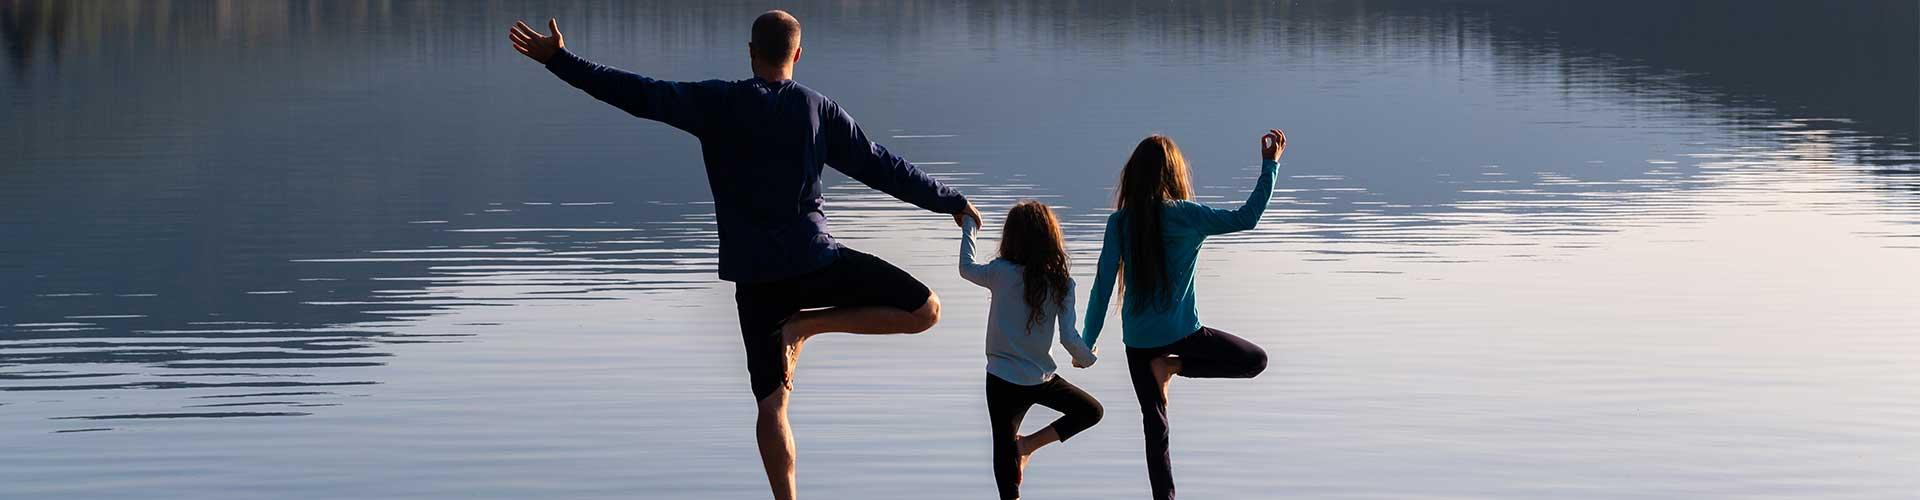 Family yoga by the water